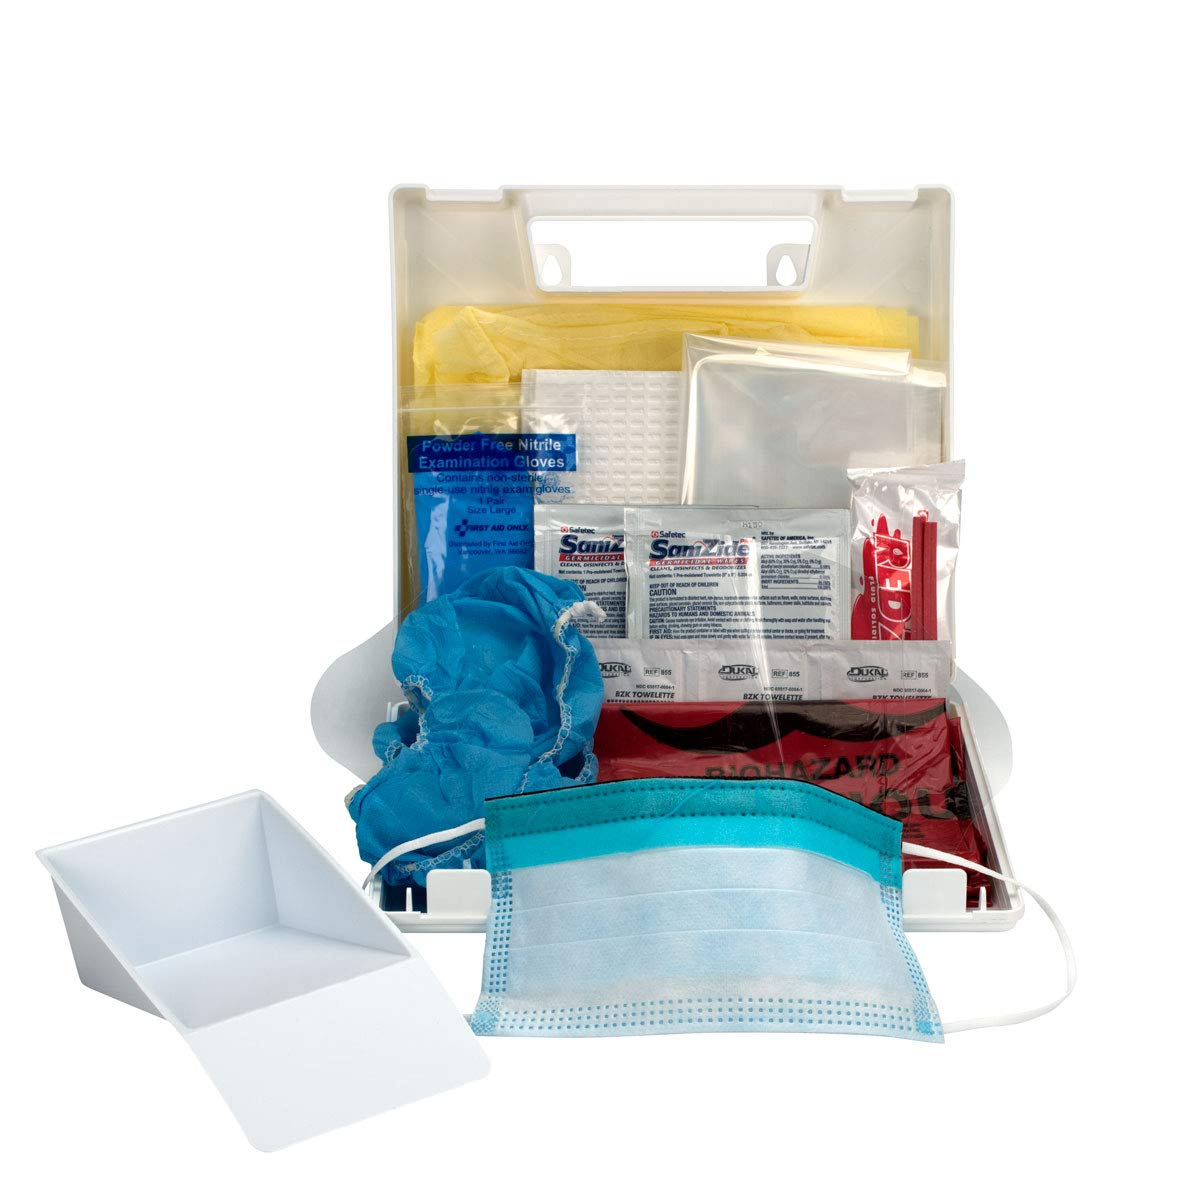 BBP Spill Clean Up Kit, Plastic Case | Wall-Mount Bloodborne Pathogen (BBP) and Bodily Fluid Spill Kit in Plastic Carry Case, OSHA, 24 Pieces, ...